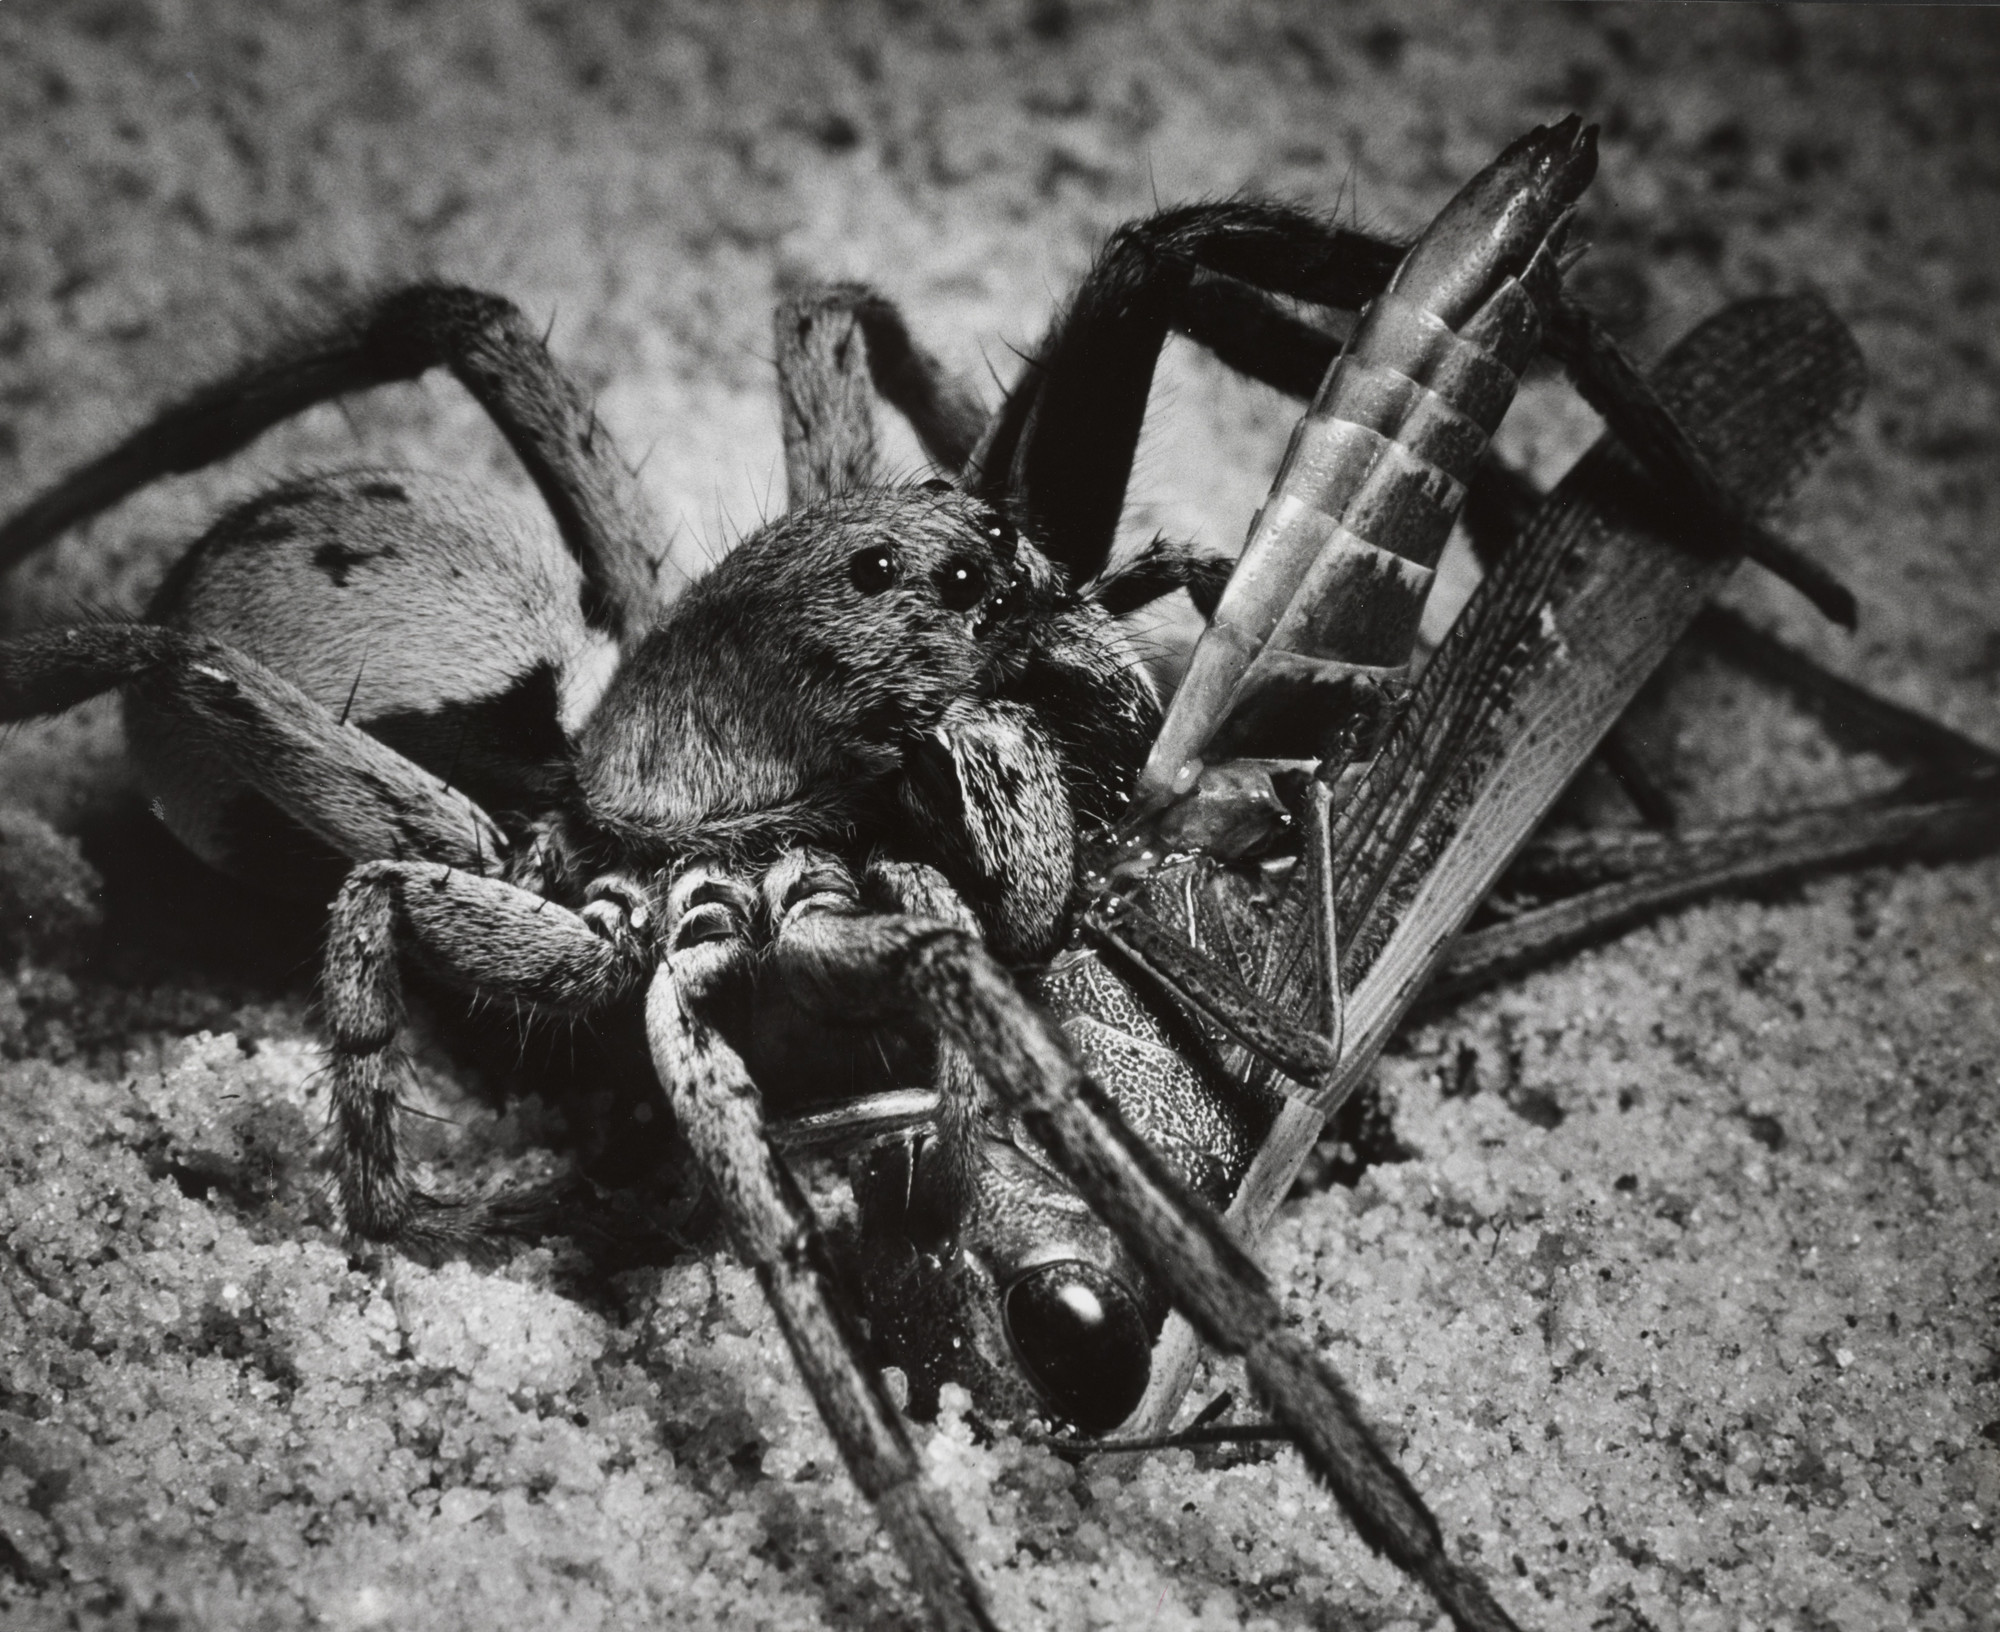 Andreas Feininger. Wolfspiders Eating Grasshoppers. 1951